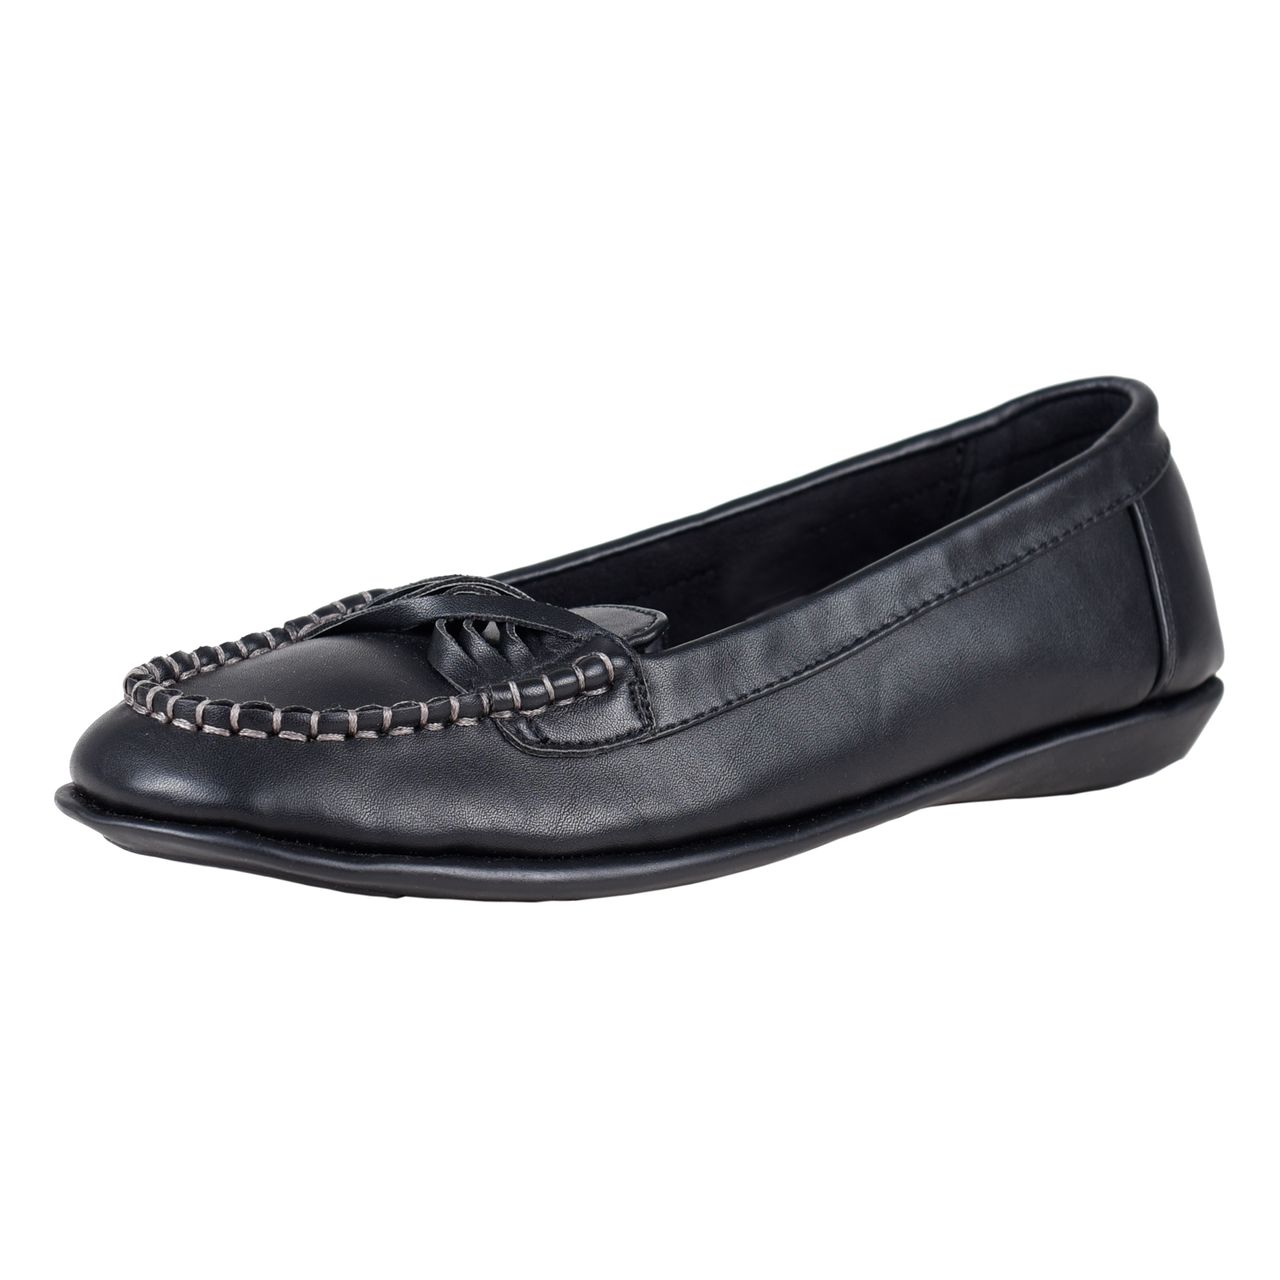 Lisanne Comfort Ladies Moccasins and Ballet Flats with Optimal Fitting